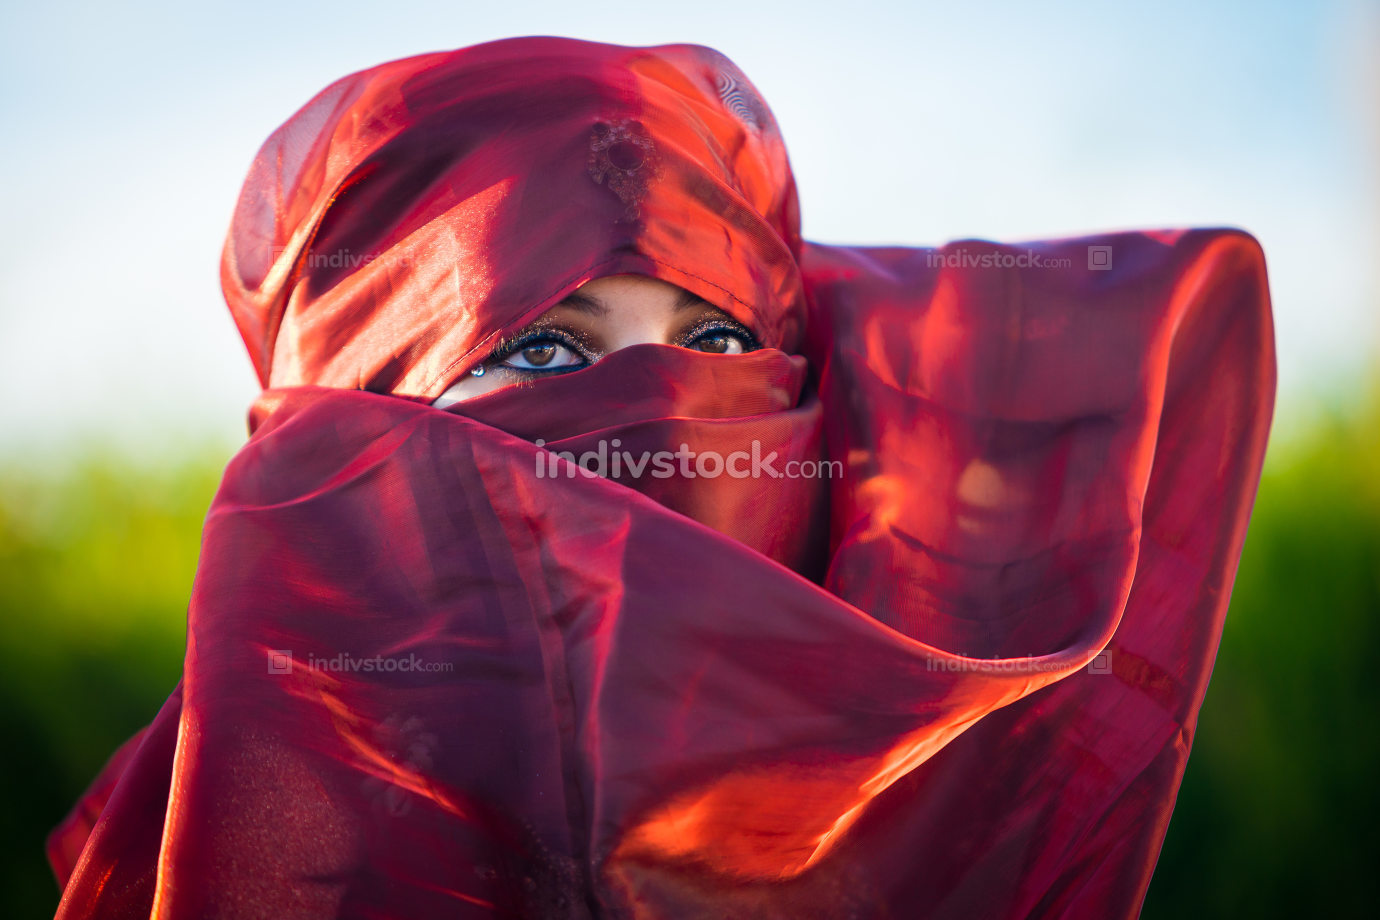 Close up view of brown woman eyes framed by headscarf